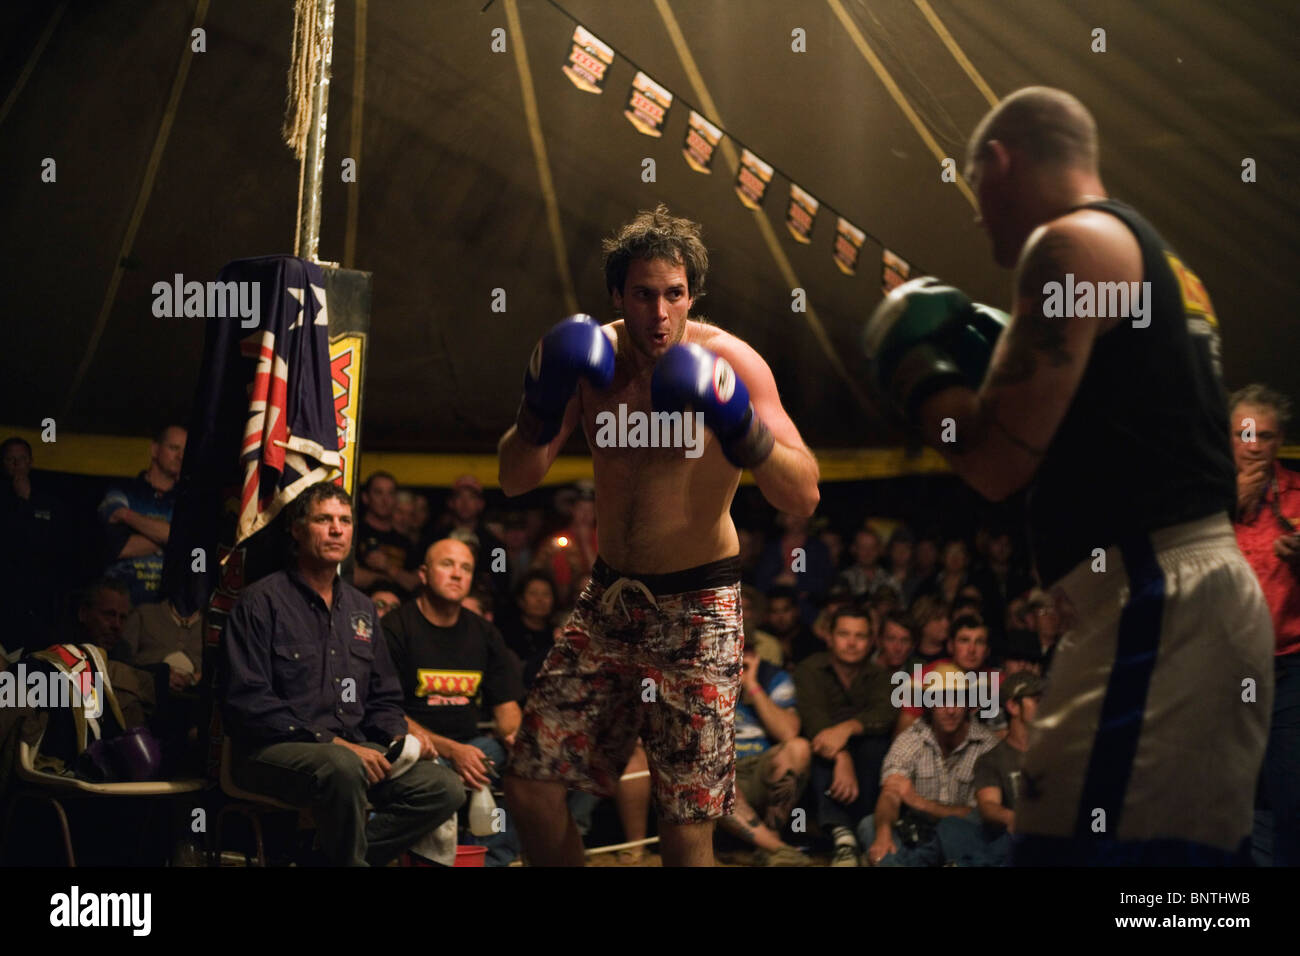 Boxers in action at Fred Brophyu0027s boxing tent during the annual Birdsville Cup races. Birdsville Queensland AUSTRALIA  sc 1 st  Alamy & Boxers in action at Fred Brophyu0027s boxing tent during the annual ...